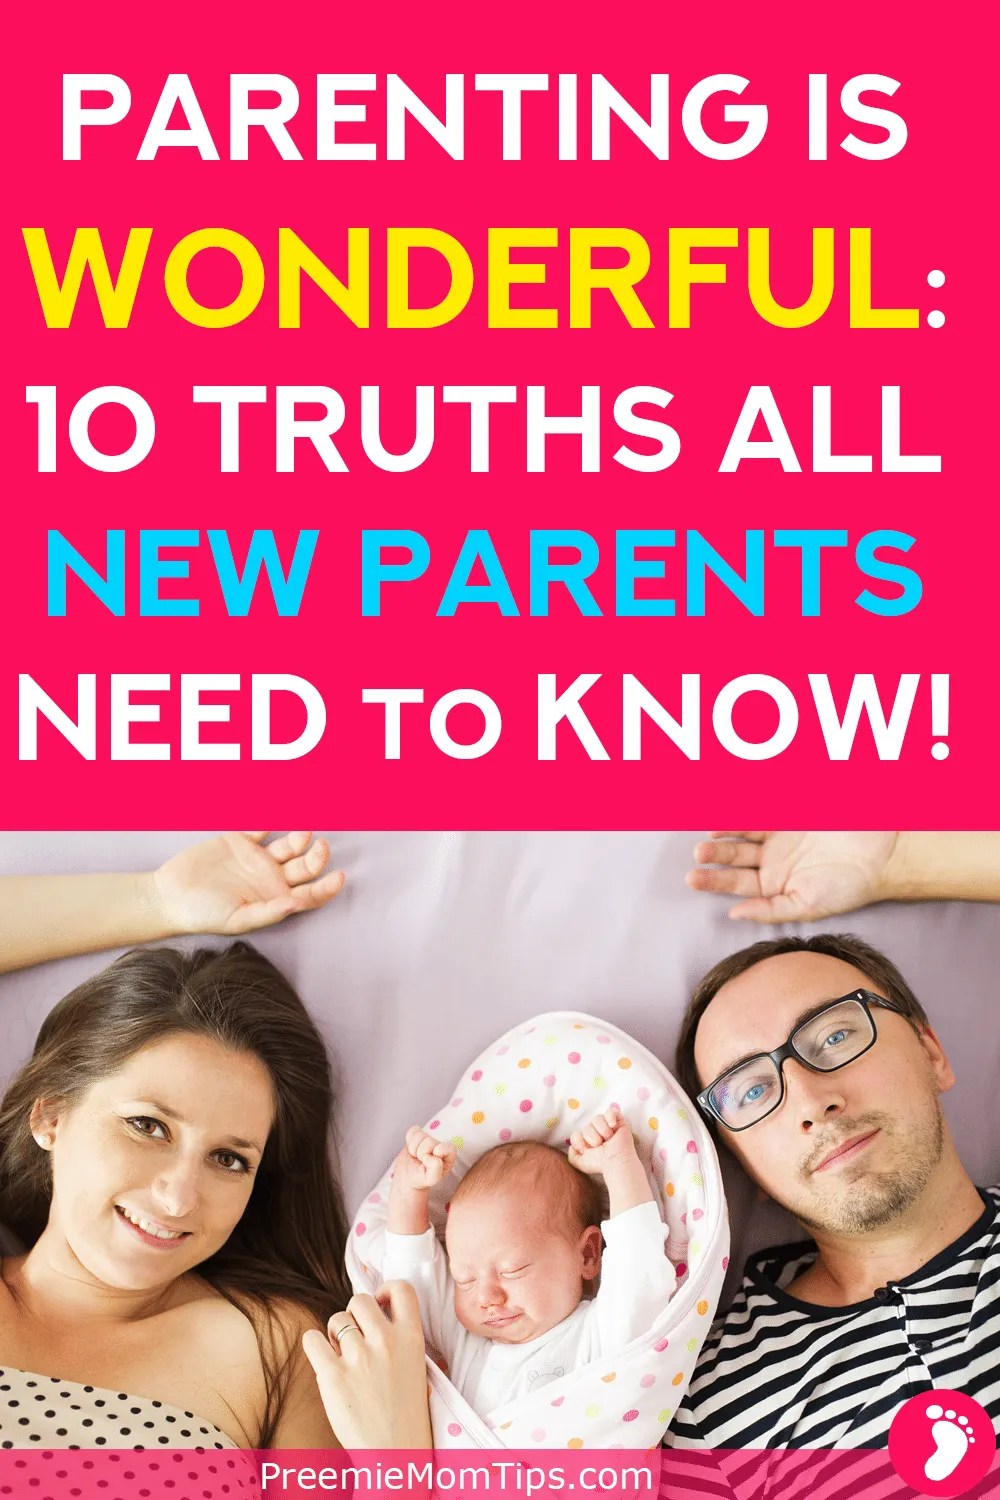 Is having a baby really as hard as people say? Don't worry, being a new parent is wonderful, and if you need new parent advice, here are 10 things I wish I had known before becoming a new mom!